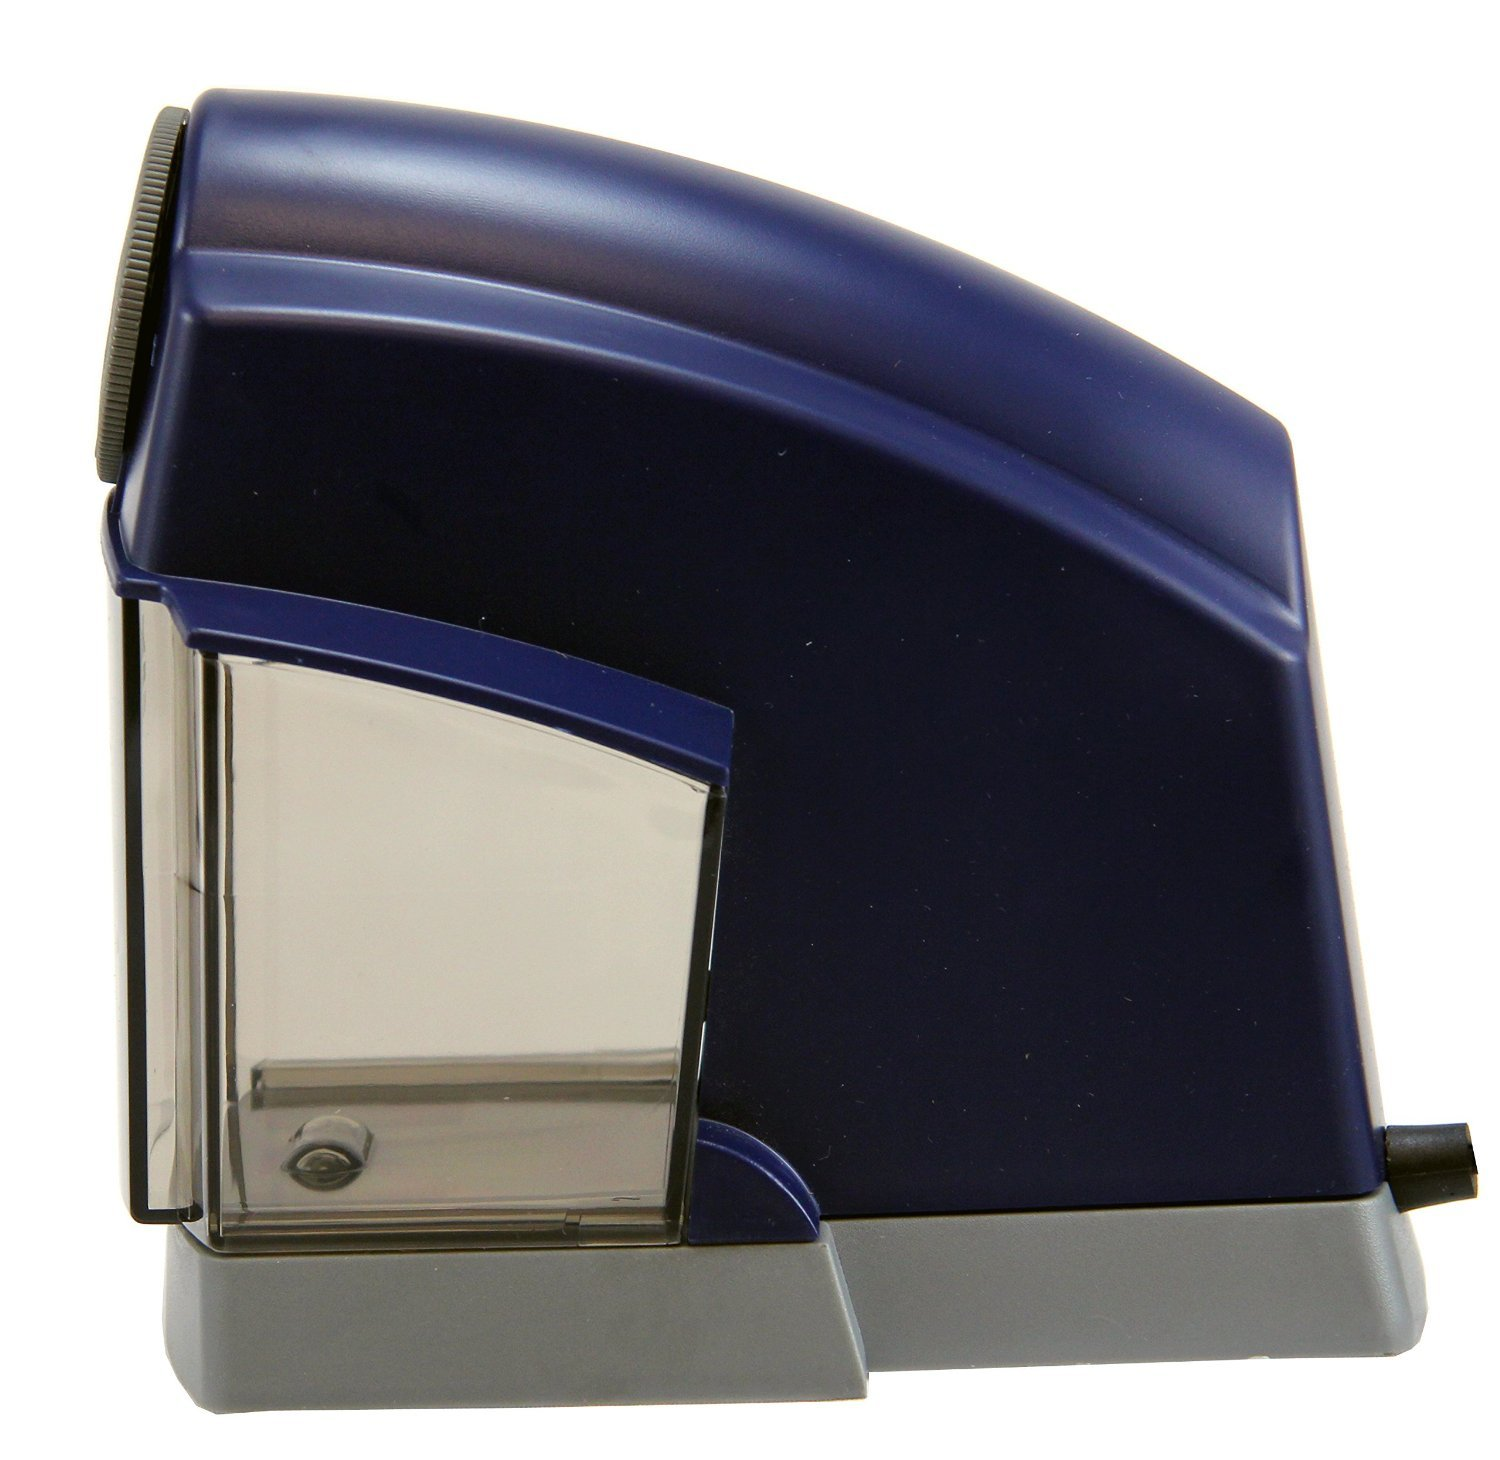 Generic Heavy-Duty Electric Sharpener